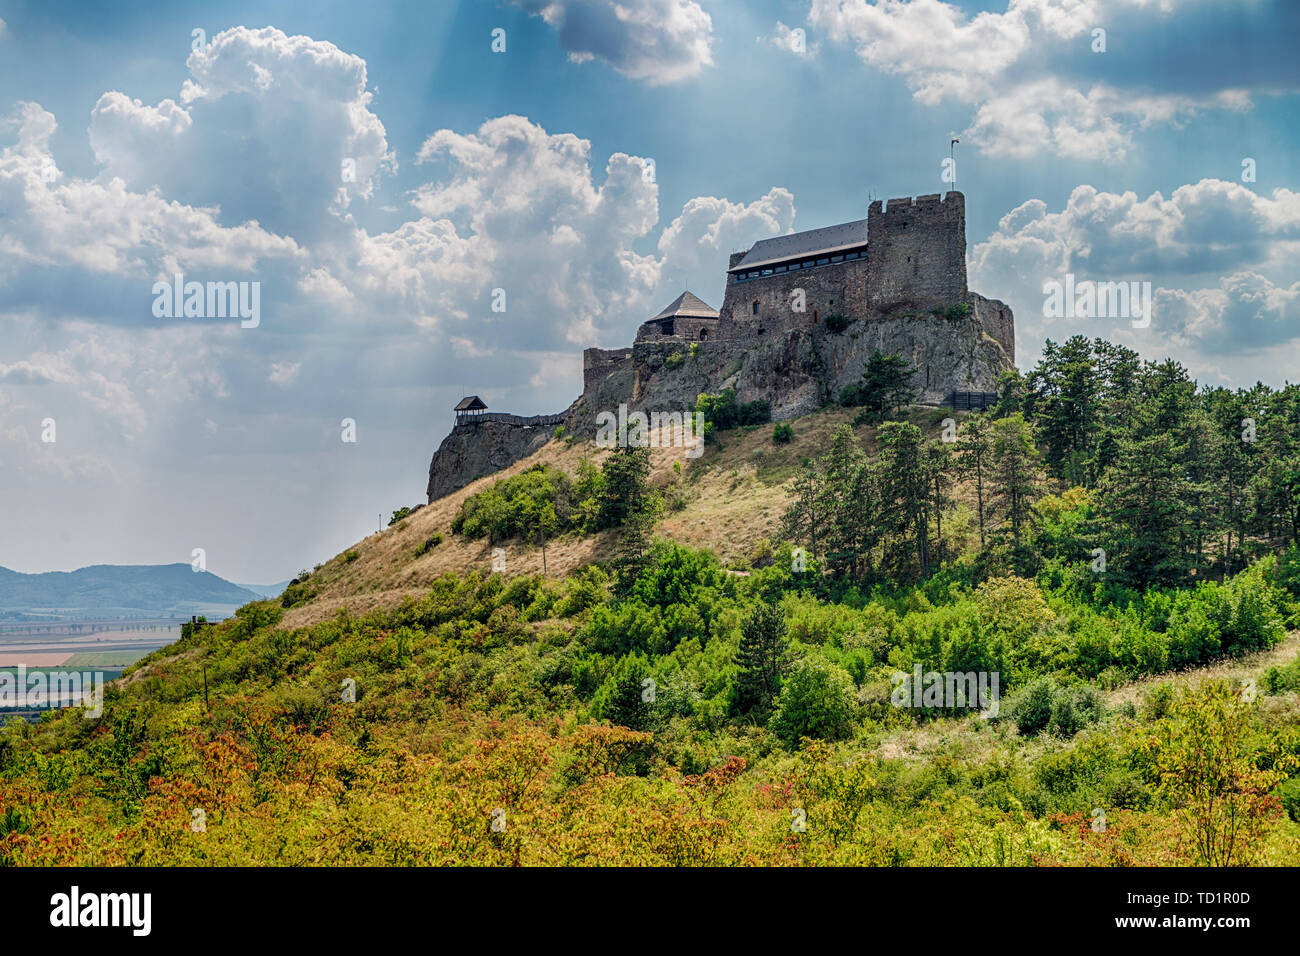 Castle of Boldogko in Hungary, Europe - Stock Image